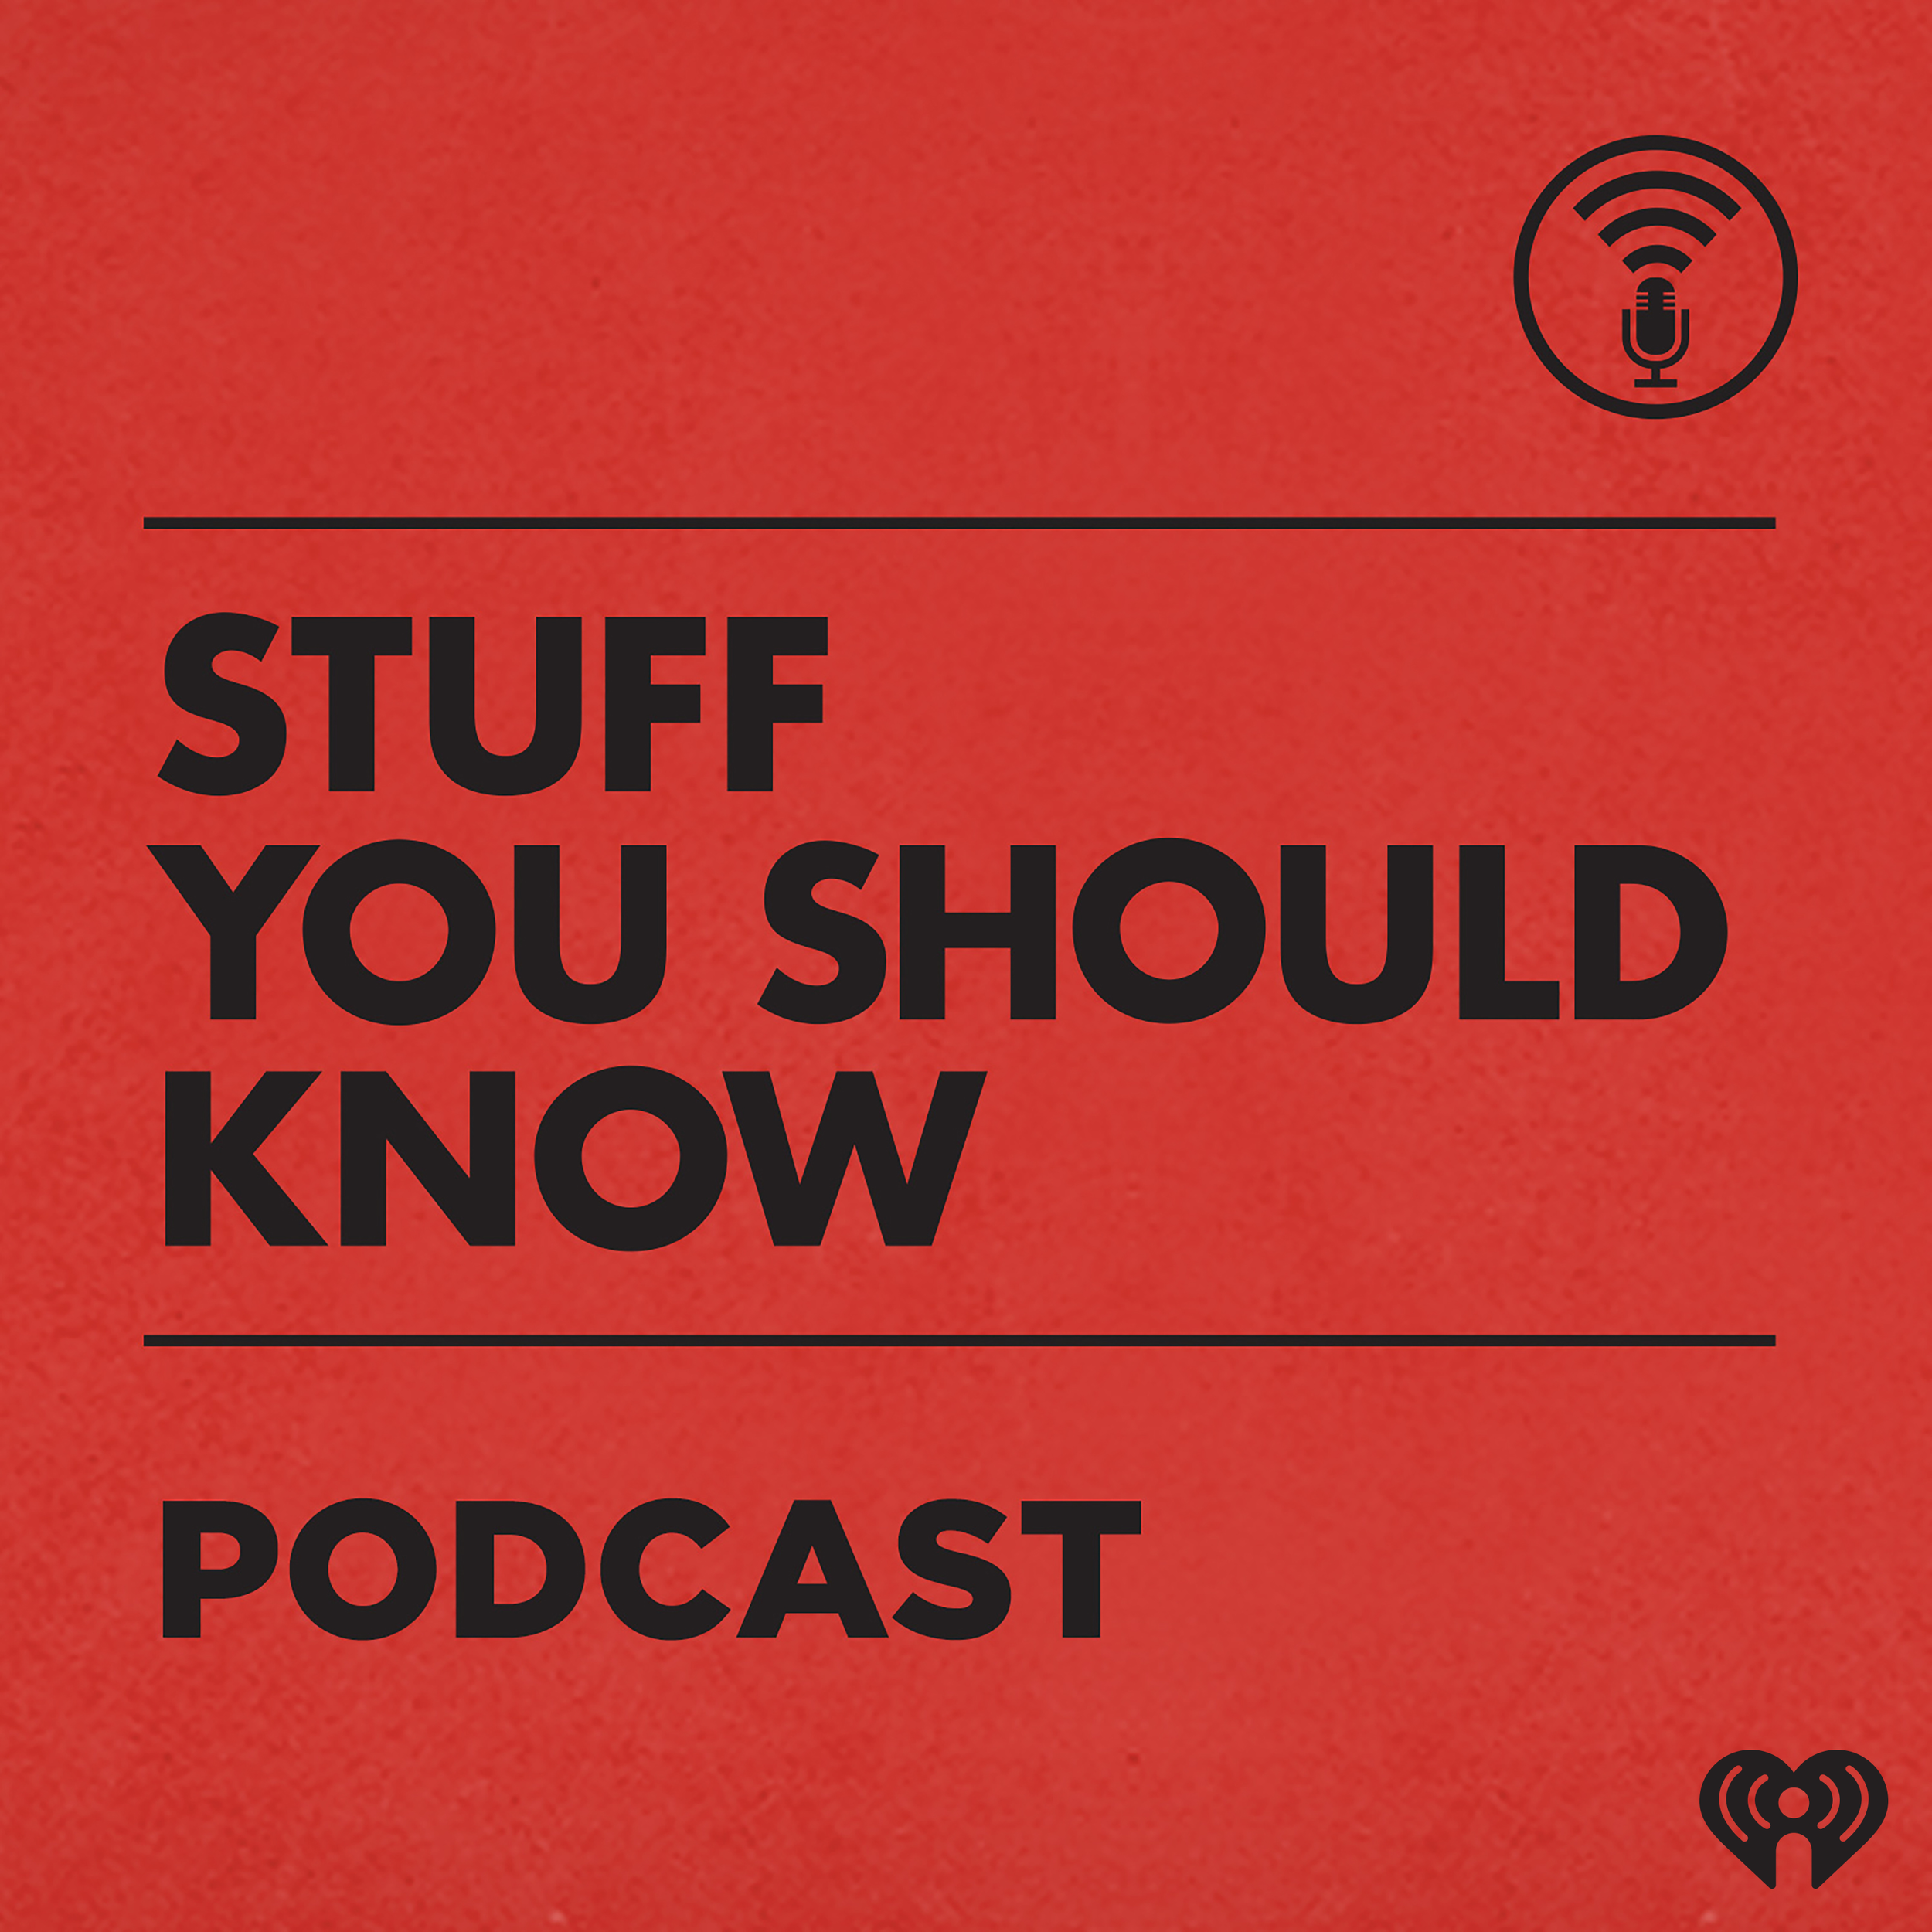 """STUFF YOU SHOULD KNOW - This podcast explores the story behind just about everything!! Want to know more about Igloos, yo-yos, elephants?; """"Stuff You Should Know"""" has you covered! This award winning podcast has over 1000 episodes and covers so many topics; you are sure to find something that sparks your interest and learn something new!"""